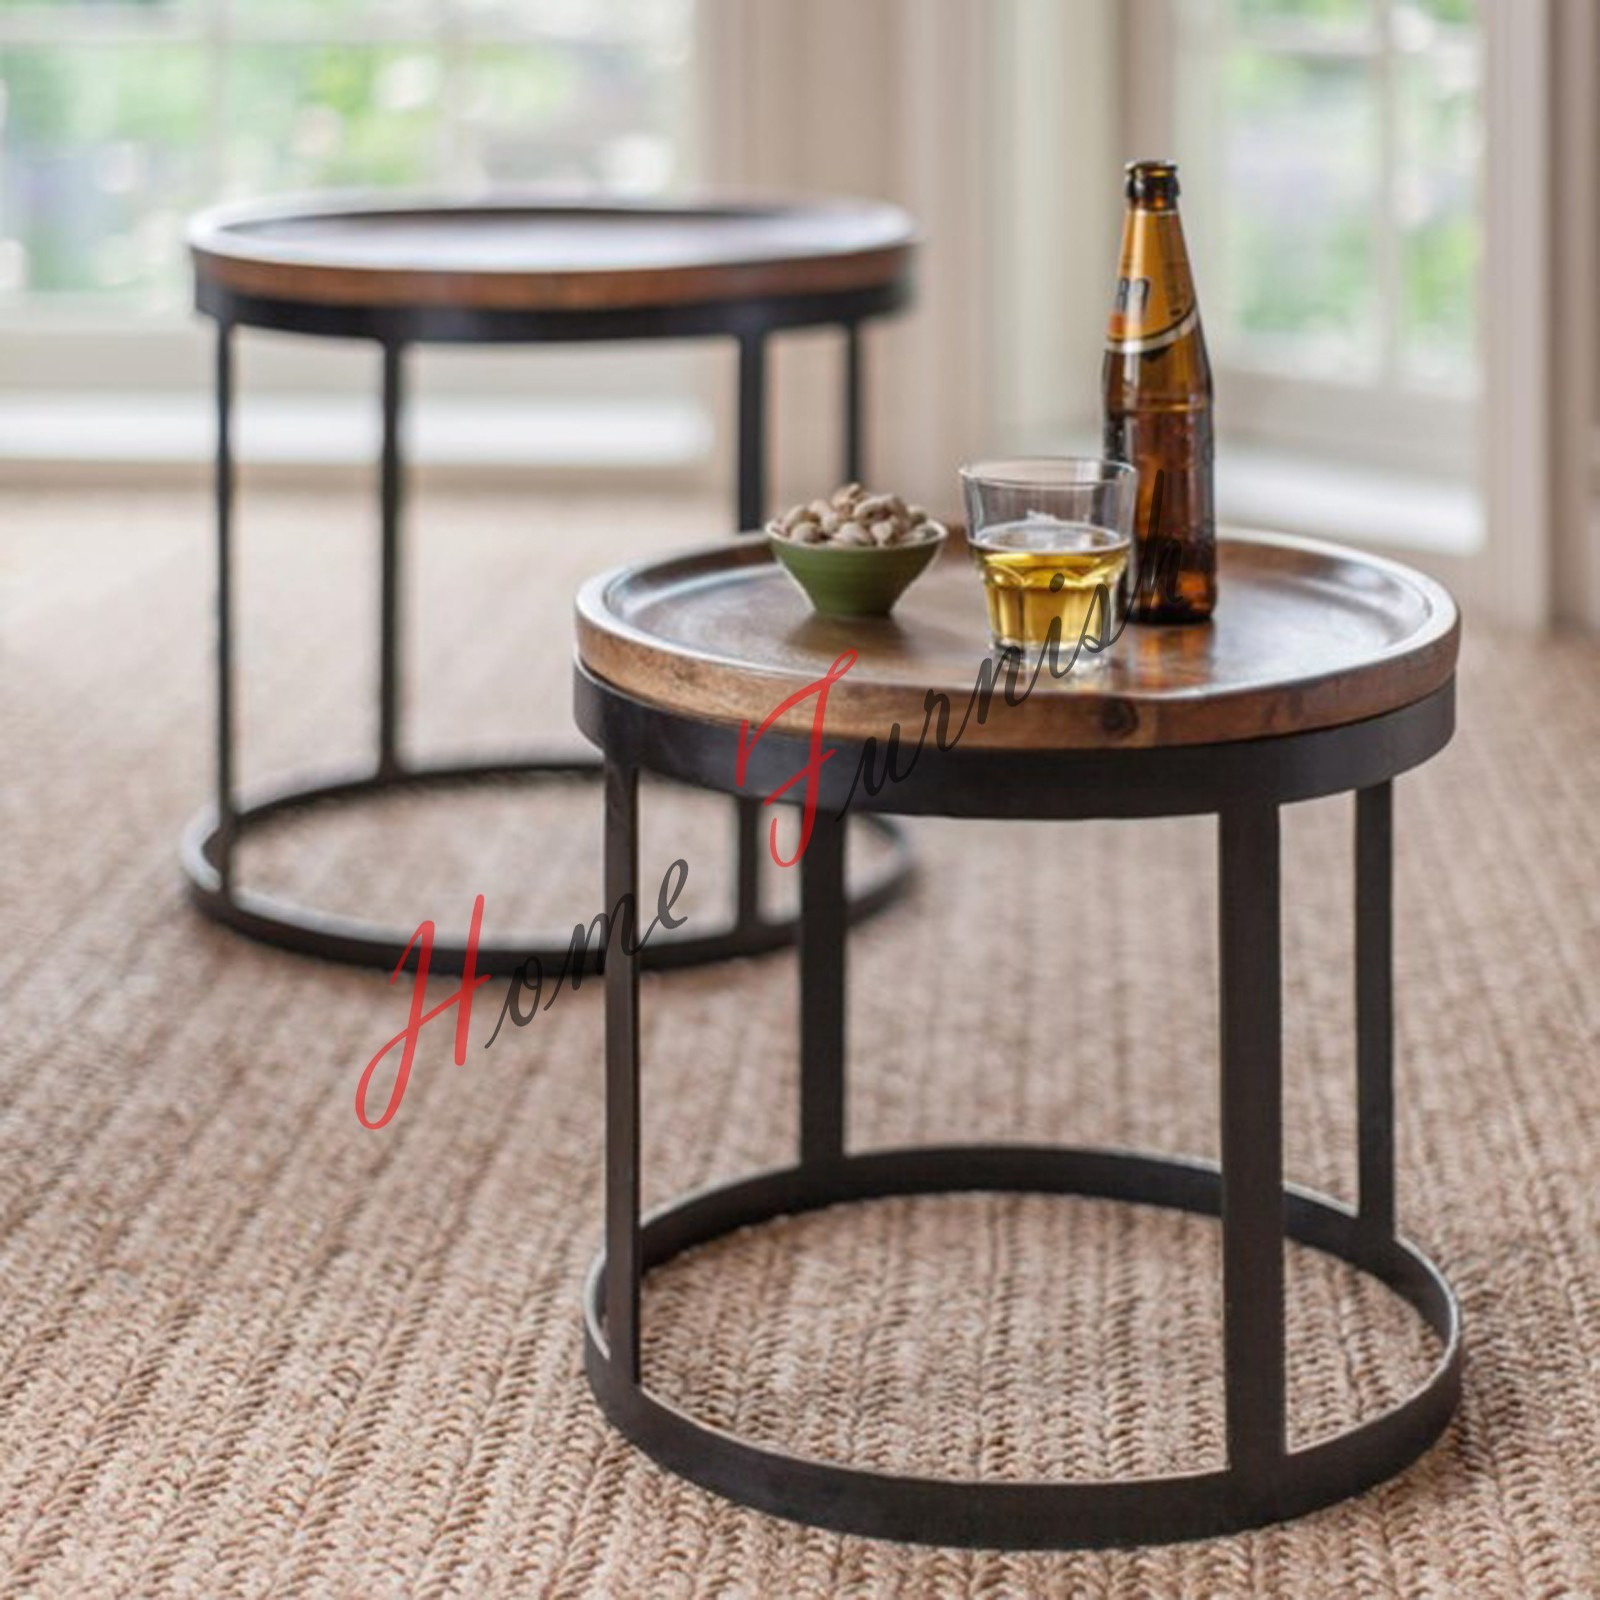 Tray Tables Vintage Look Industrial Style Coffee Table Neste Tables